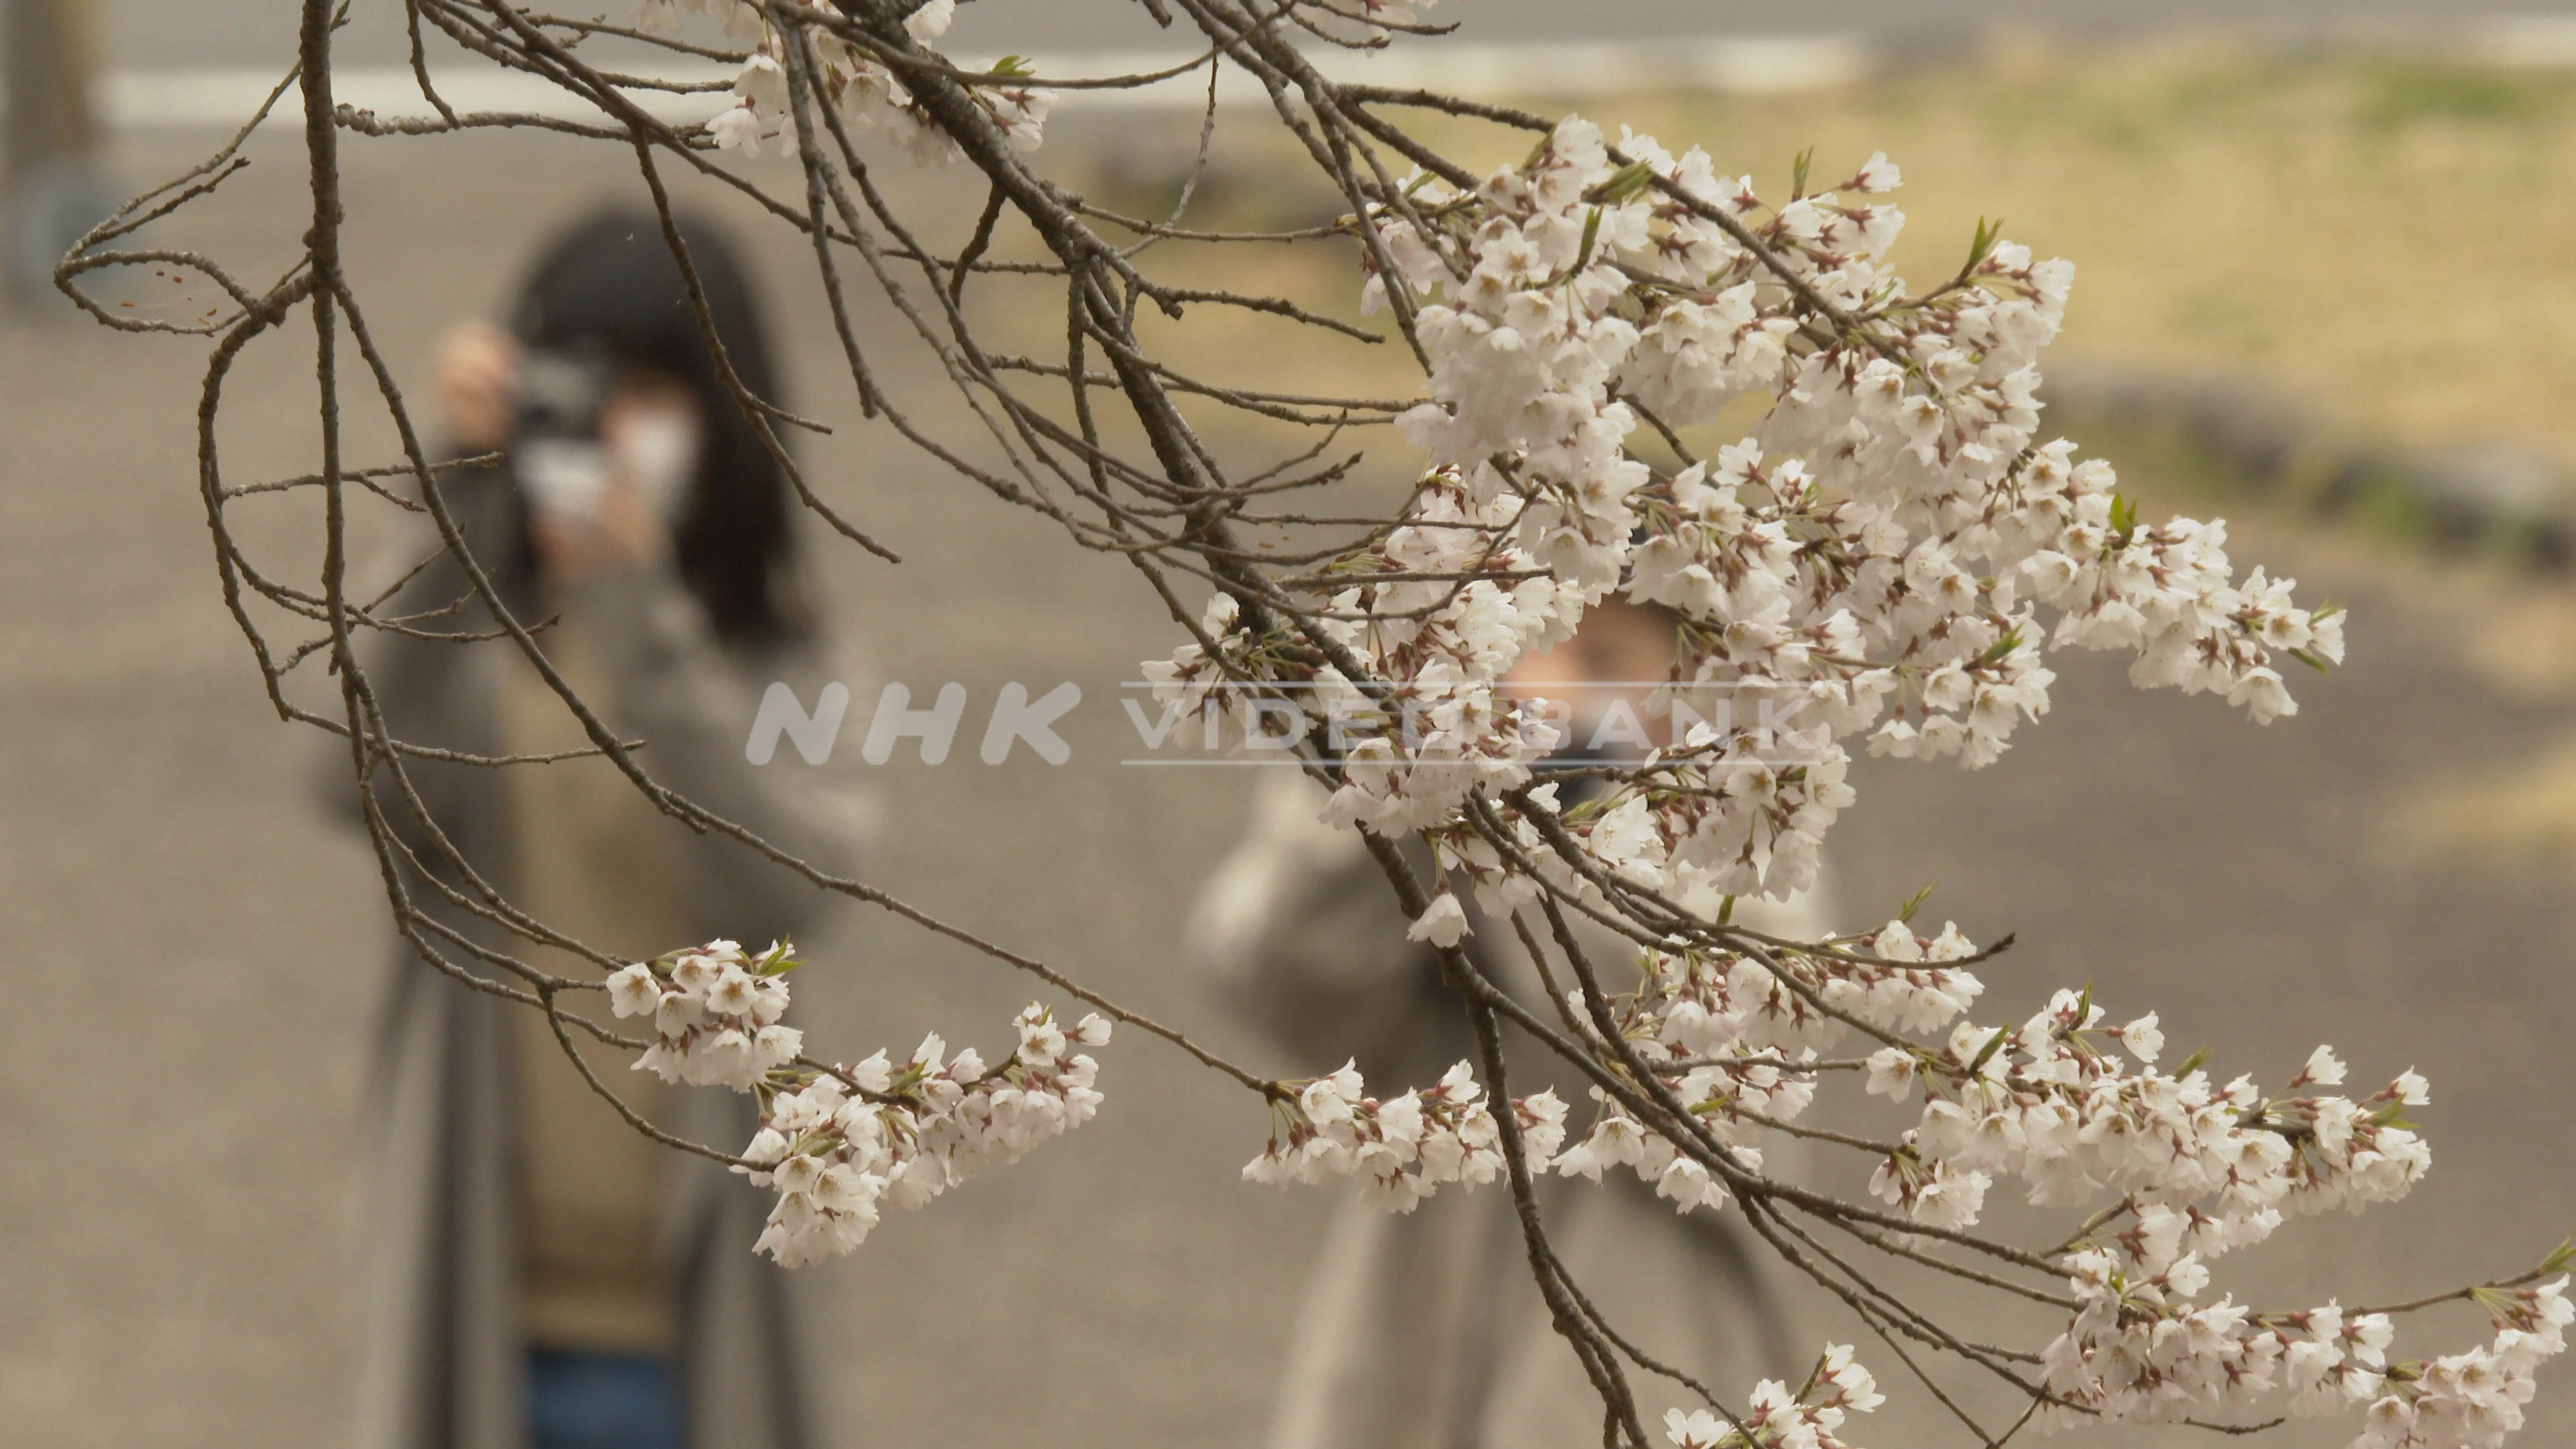 4K: The Usuzumi-zakura Cherry Tree